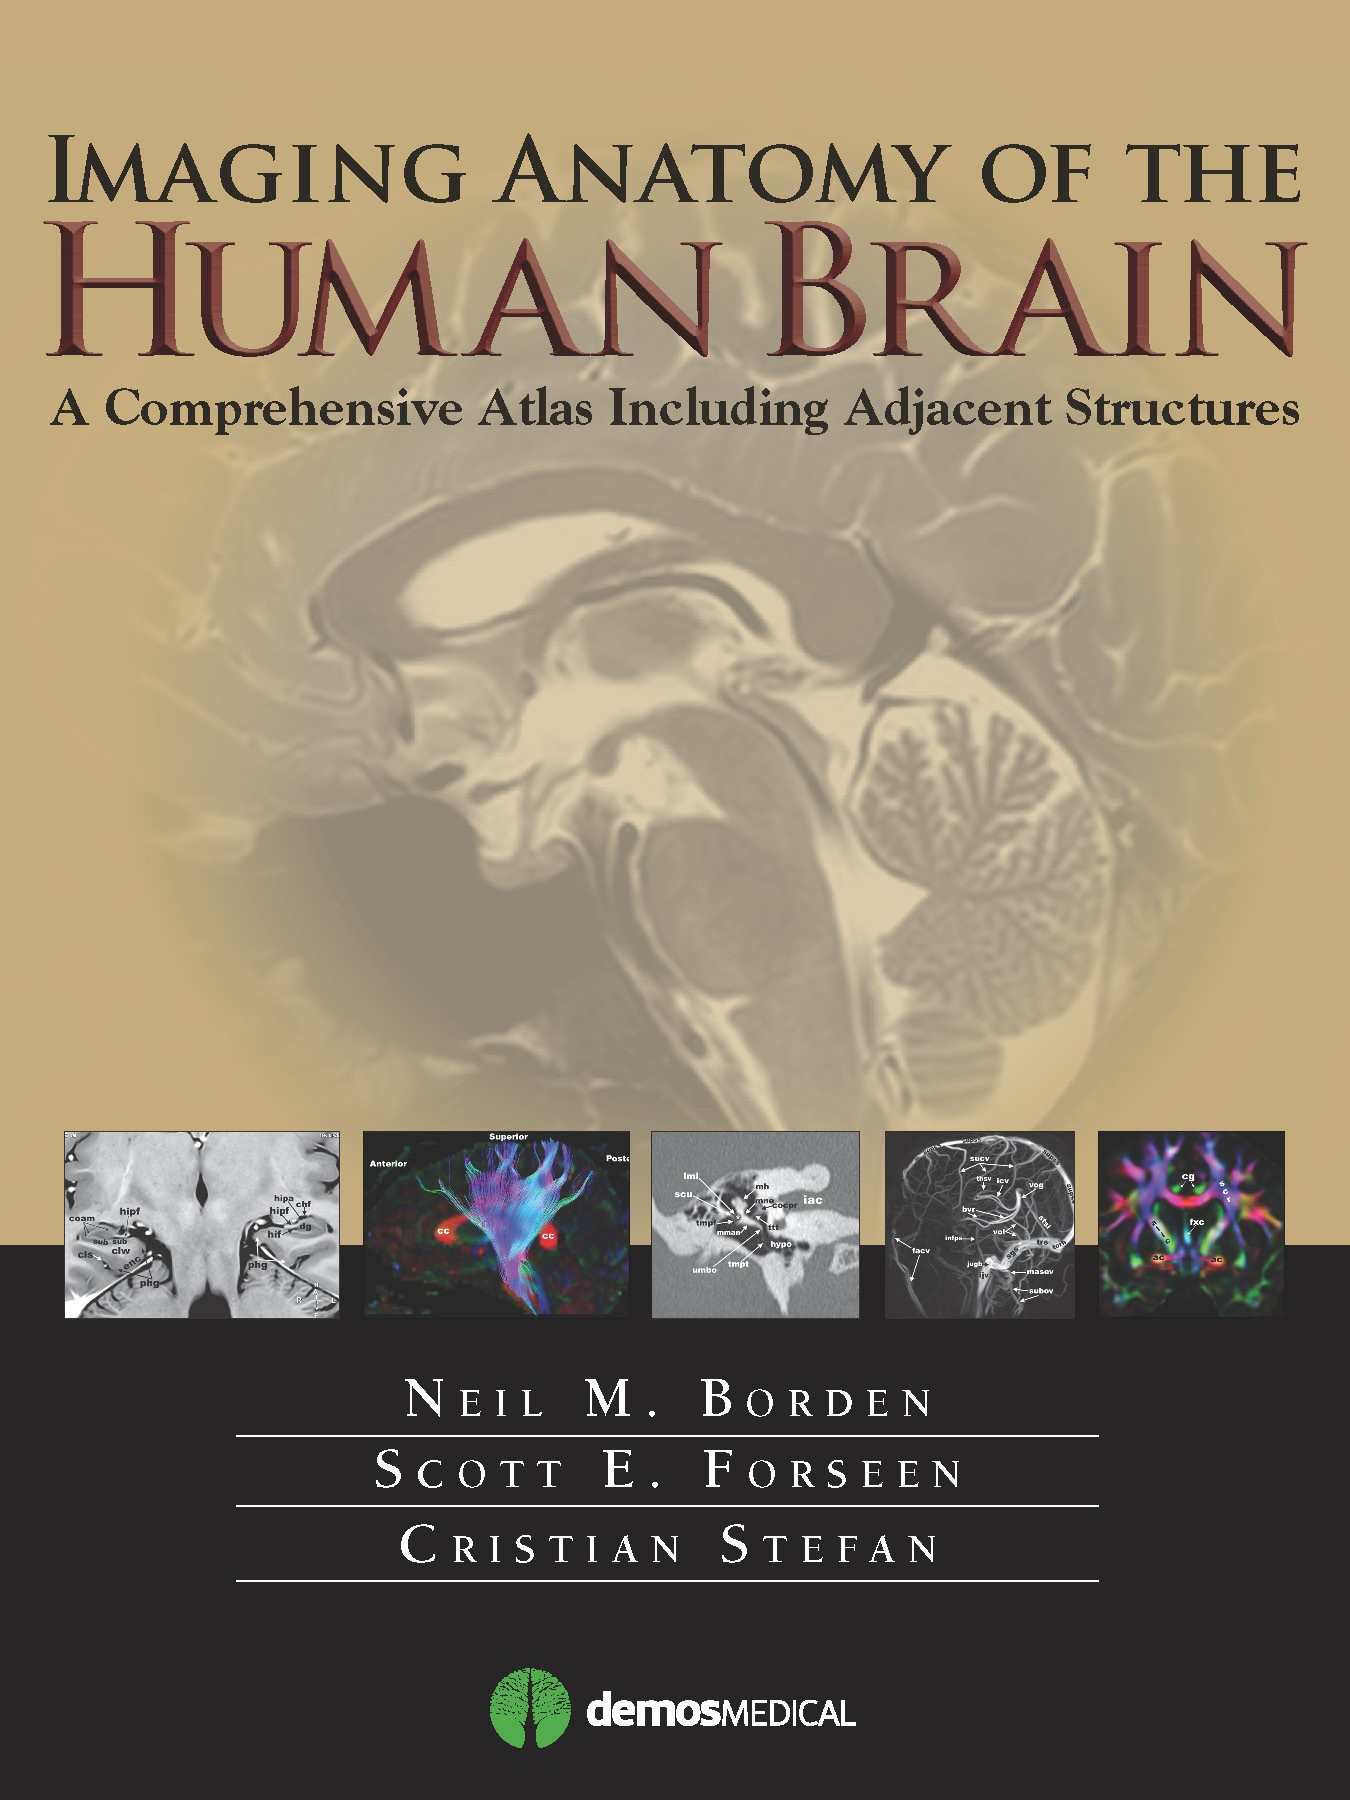 Imaging Anatomy of the Human Brain- A Comprehensive Atlas Including Adjacent Structures